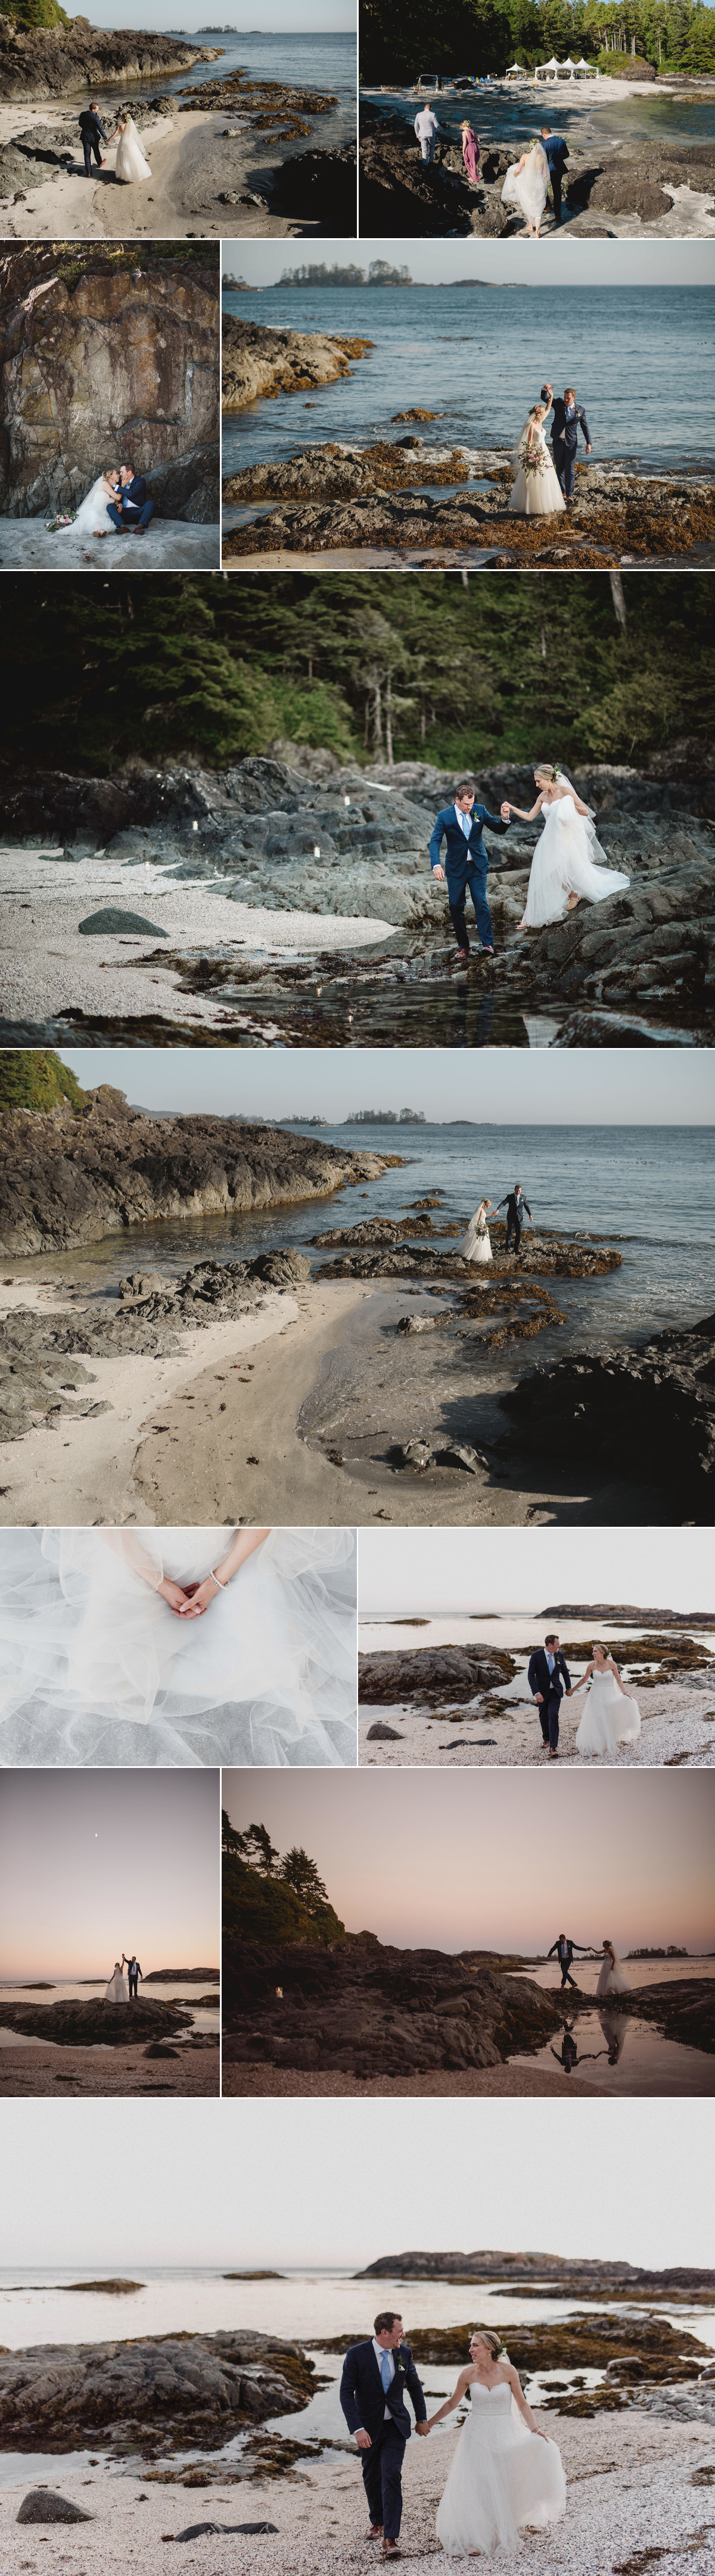 beach wedding, beach wedding photographer, award winning tofino wedding photographer, wedding photography, private beach wedding